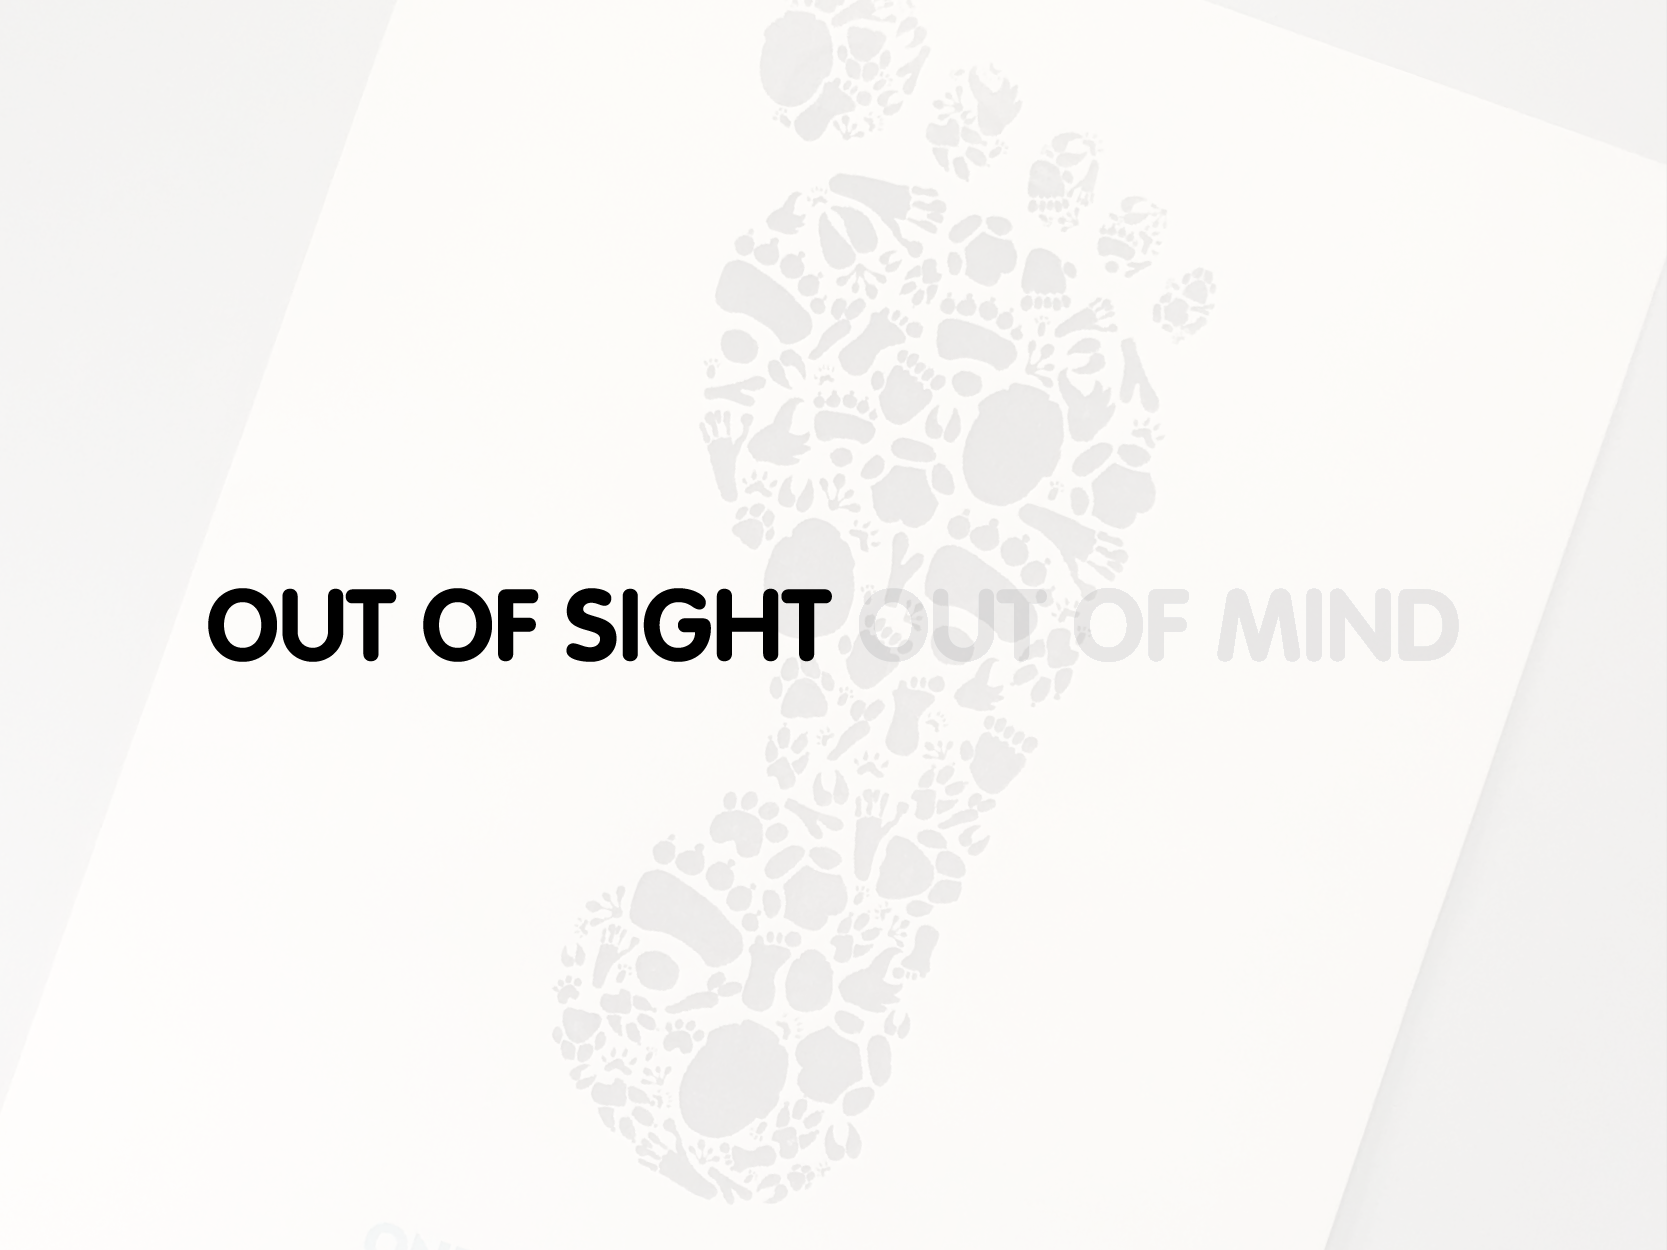 Out of Sight Out of Mind Posters